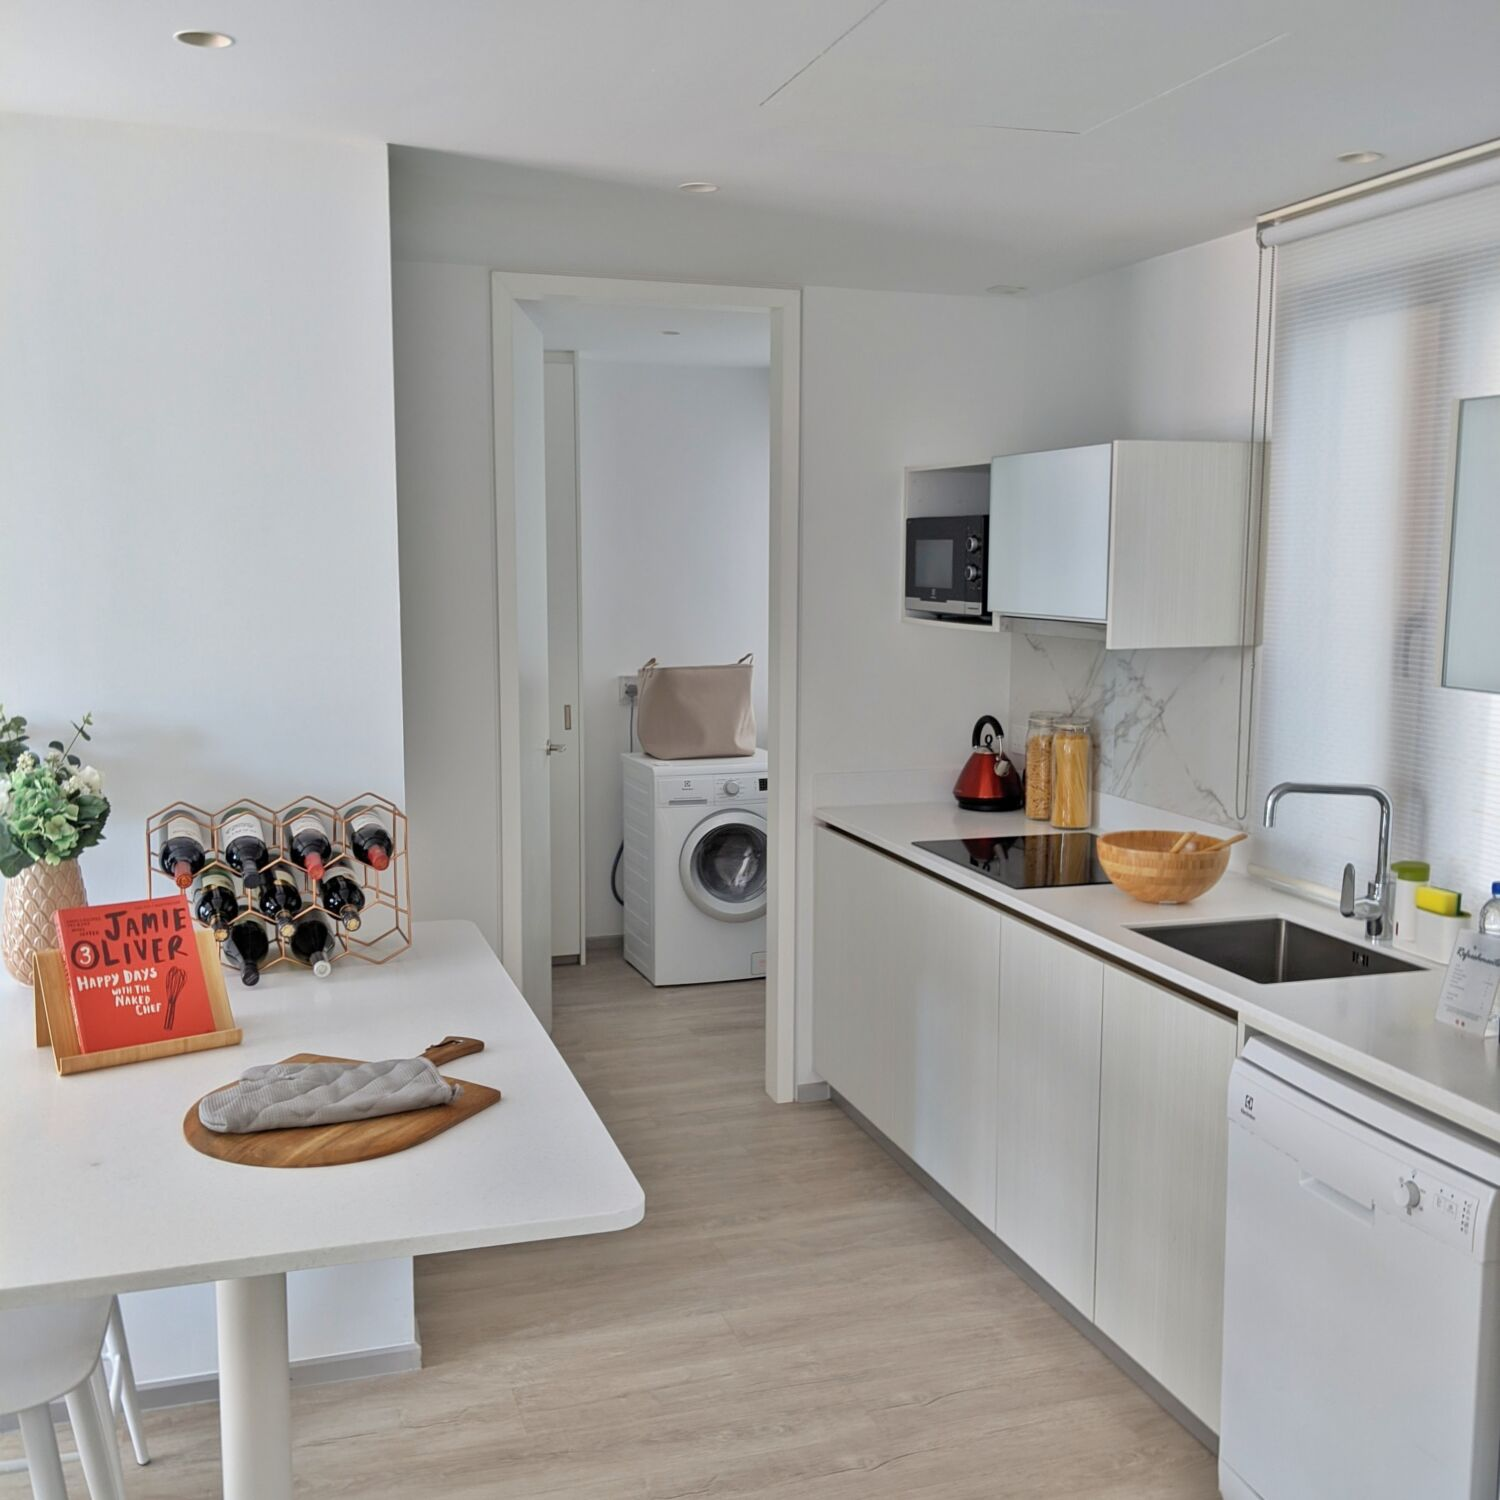 Winsland Serviced Suites by Lanson Place Two-Bedroom Executive Suite Kitchen